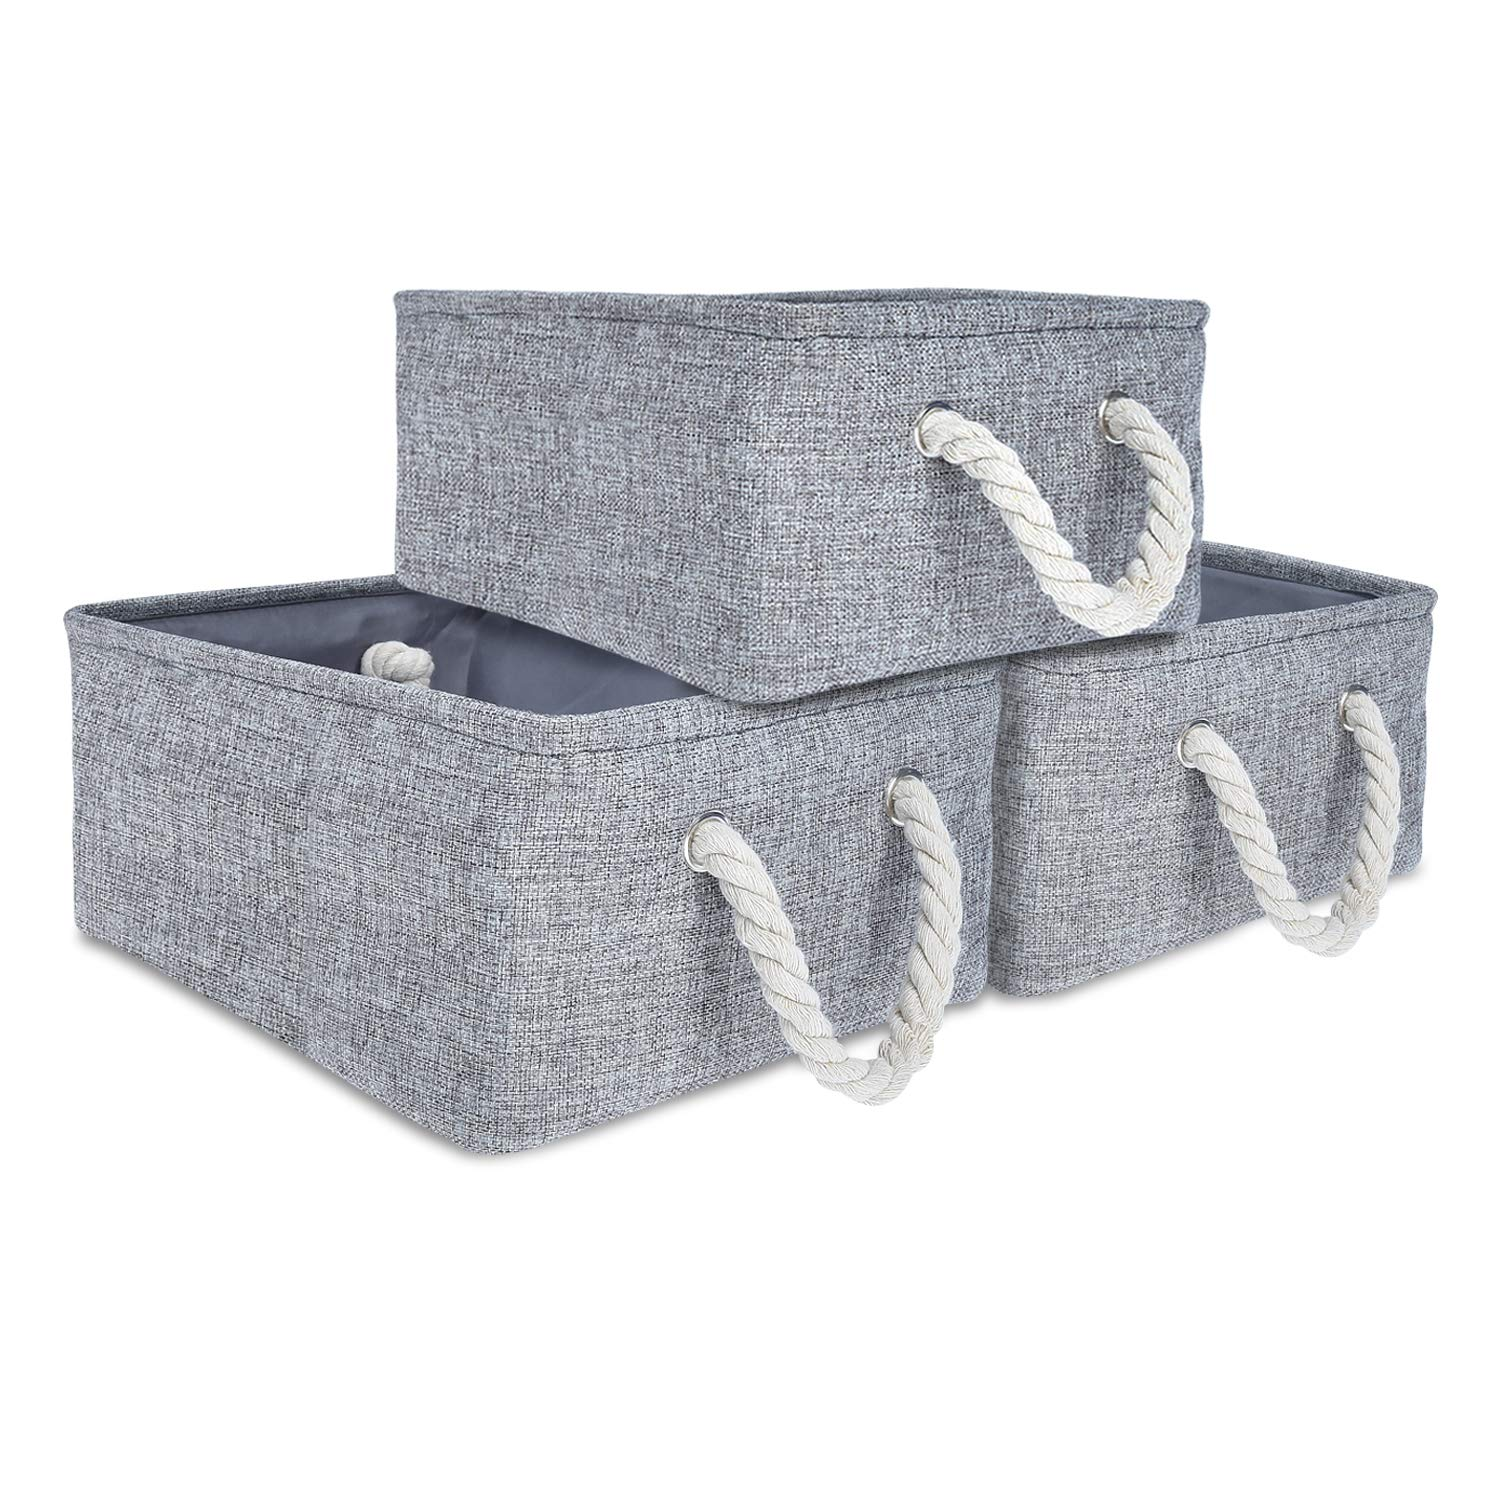 Expo Essential - 3 Pack - 17''x13''x7'' Collapsible Washable Storage Baskets Linen Bin Cube Foldable Toy Organizer, Bathroom Kitchen Fabric Storage Dual Rope Handles